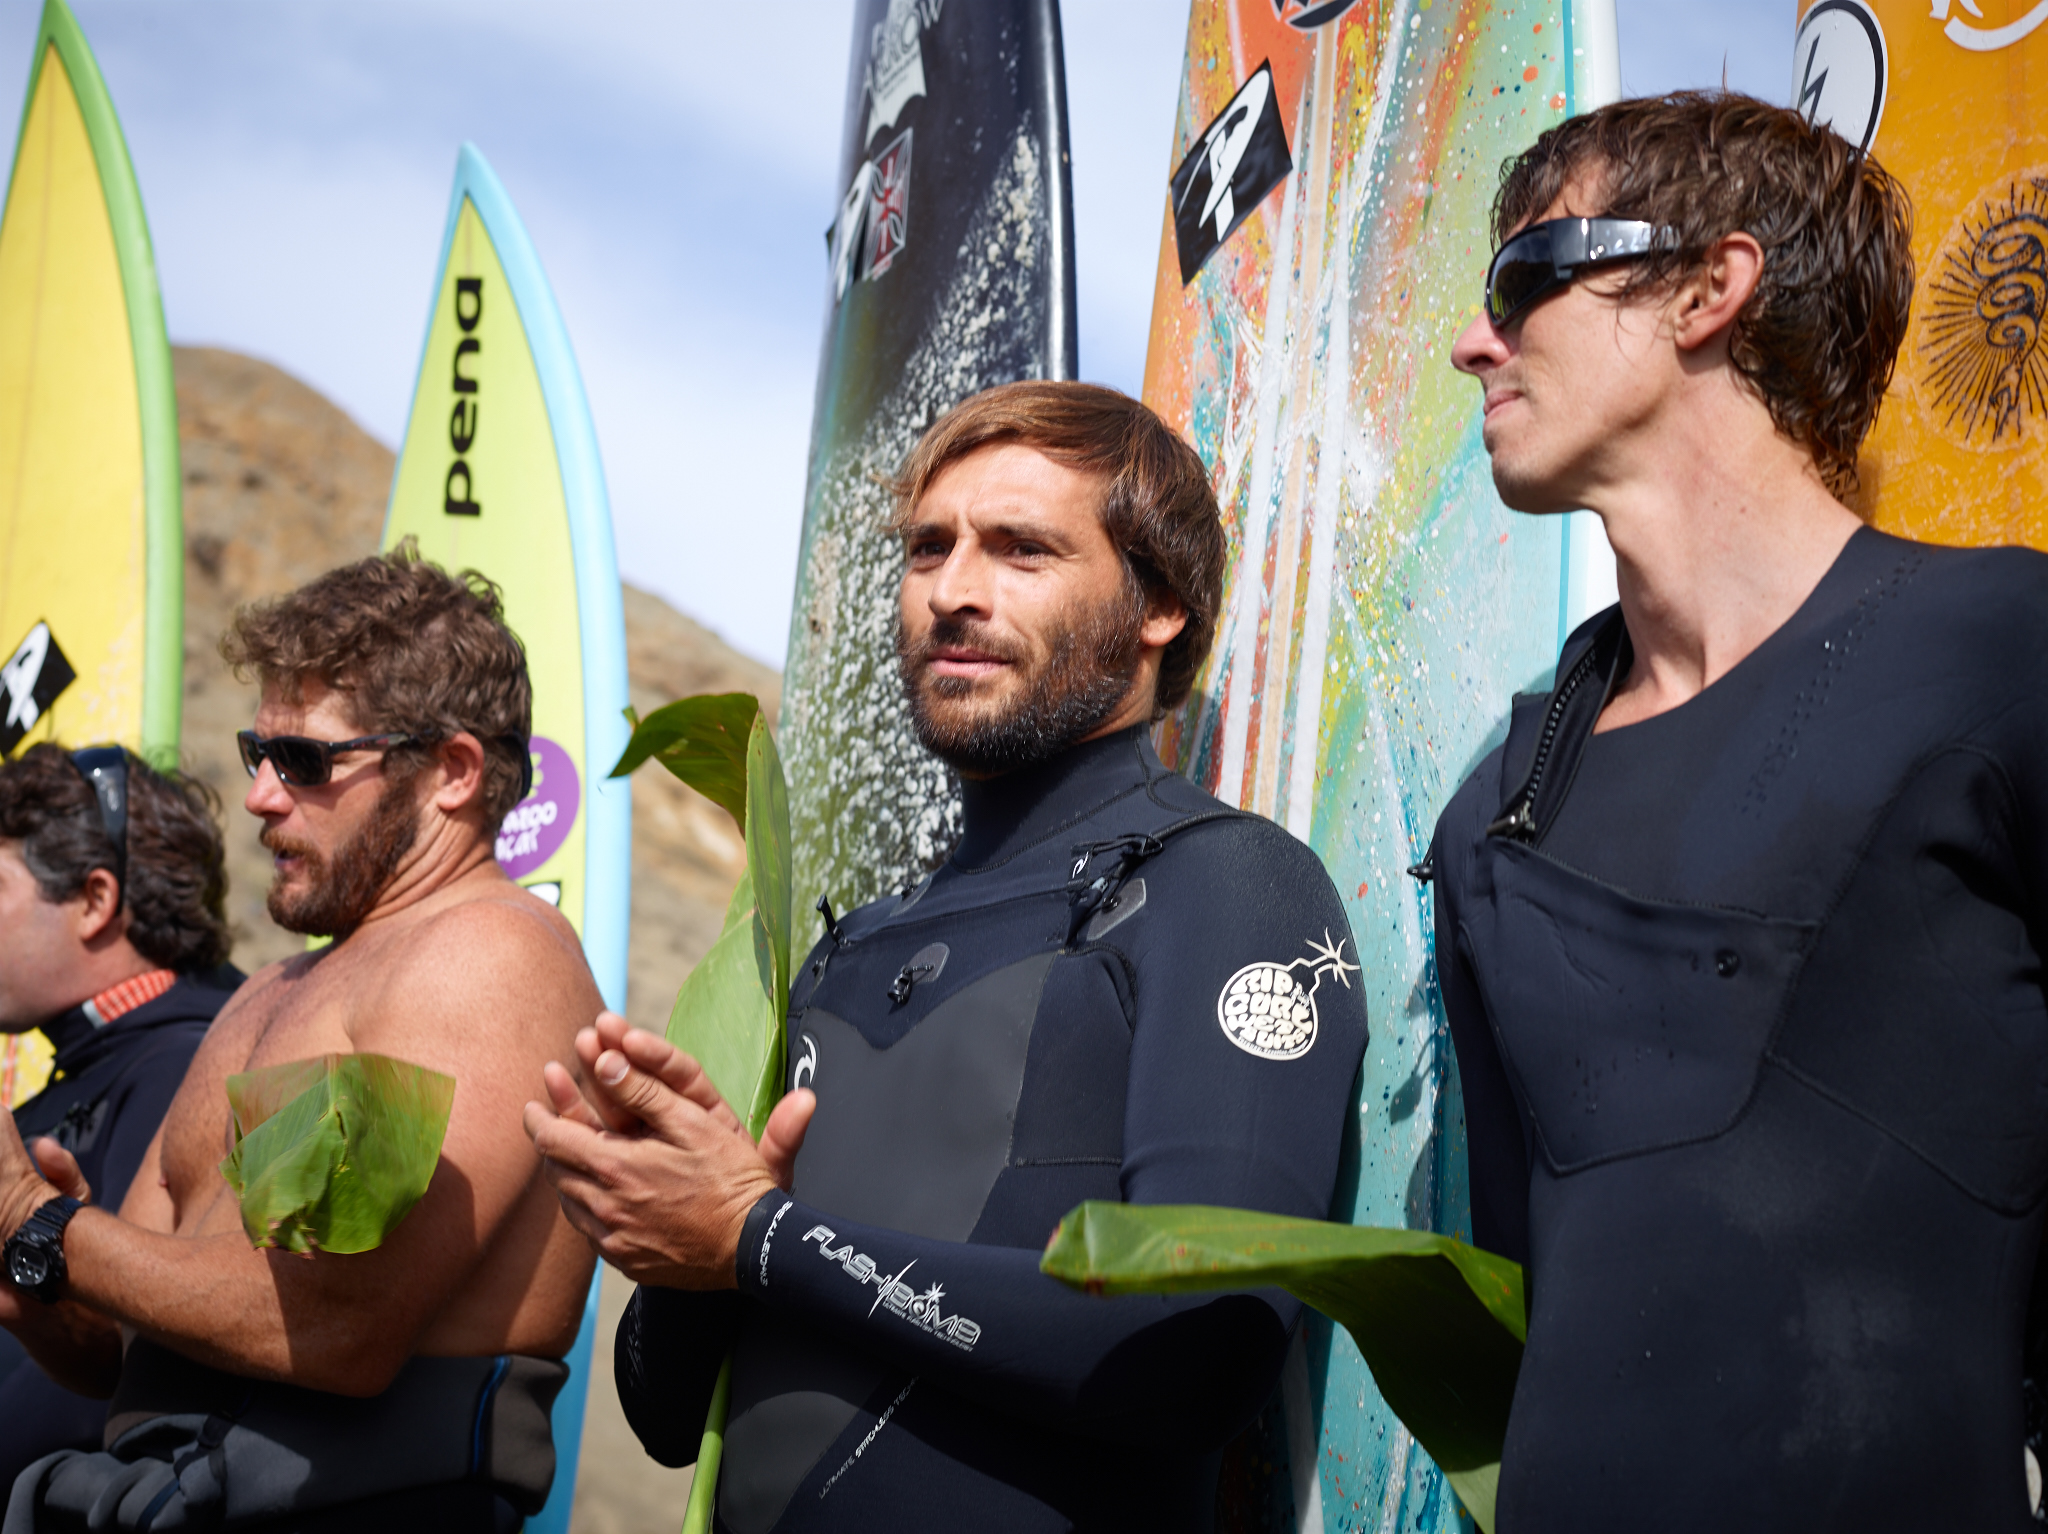 Mavericks Invitational 2013 Opening Ceremony by Peter Adams.